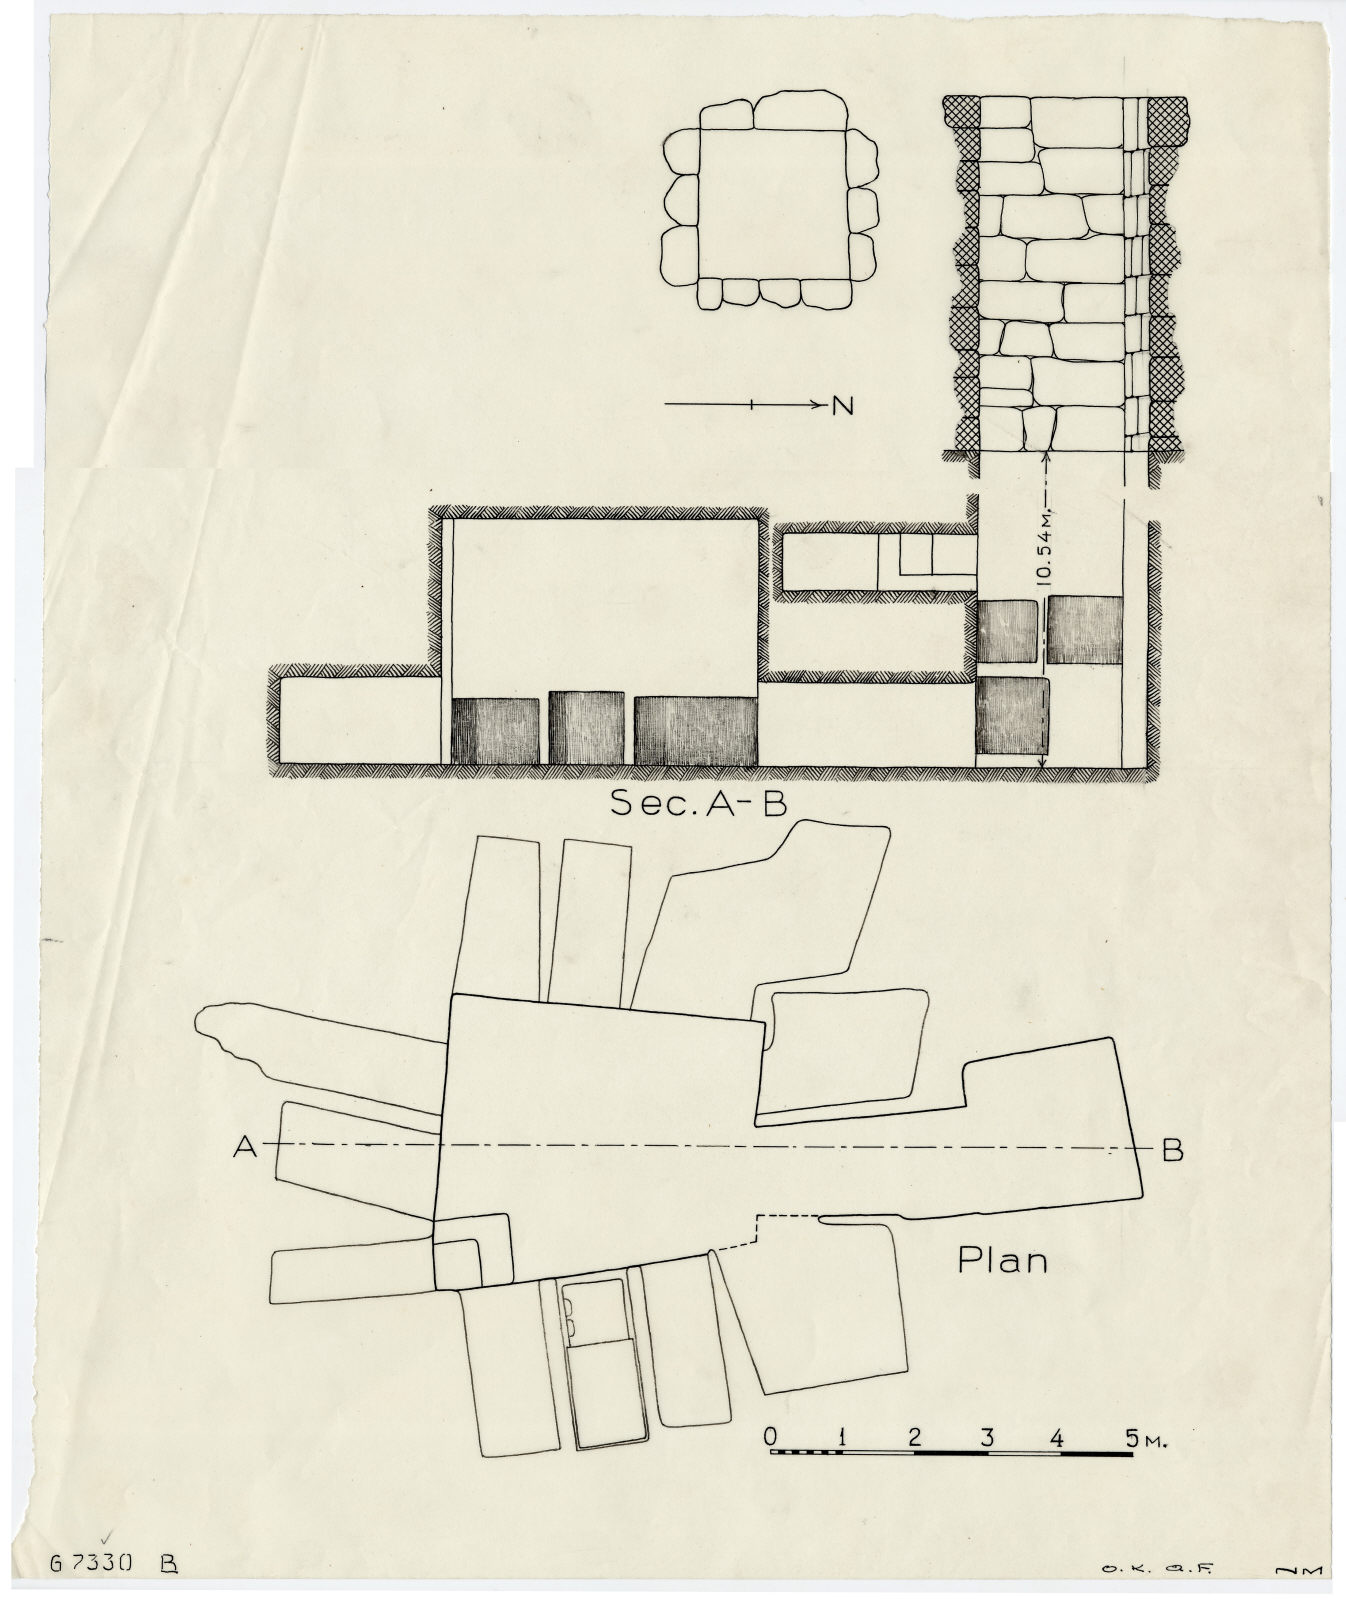 Maps and plans:  G 7330, Plan and section